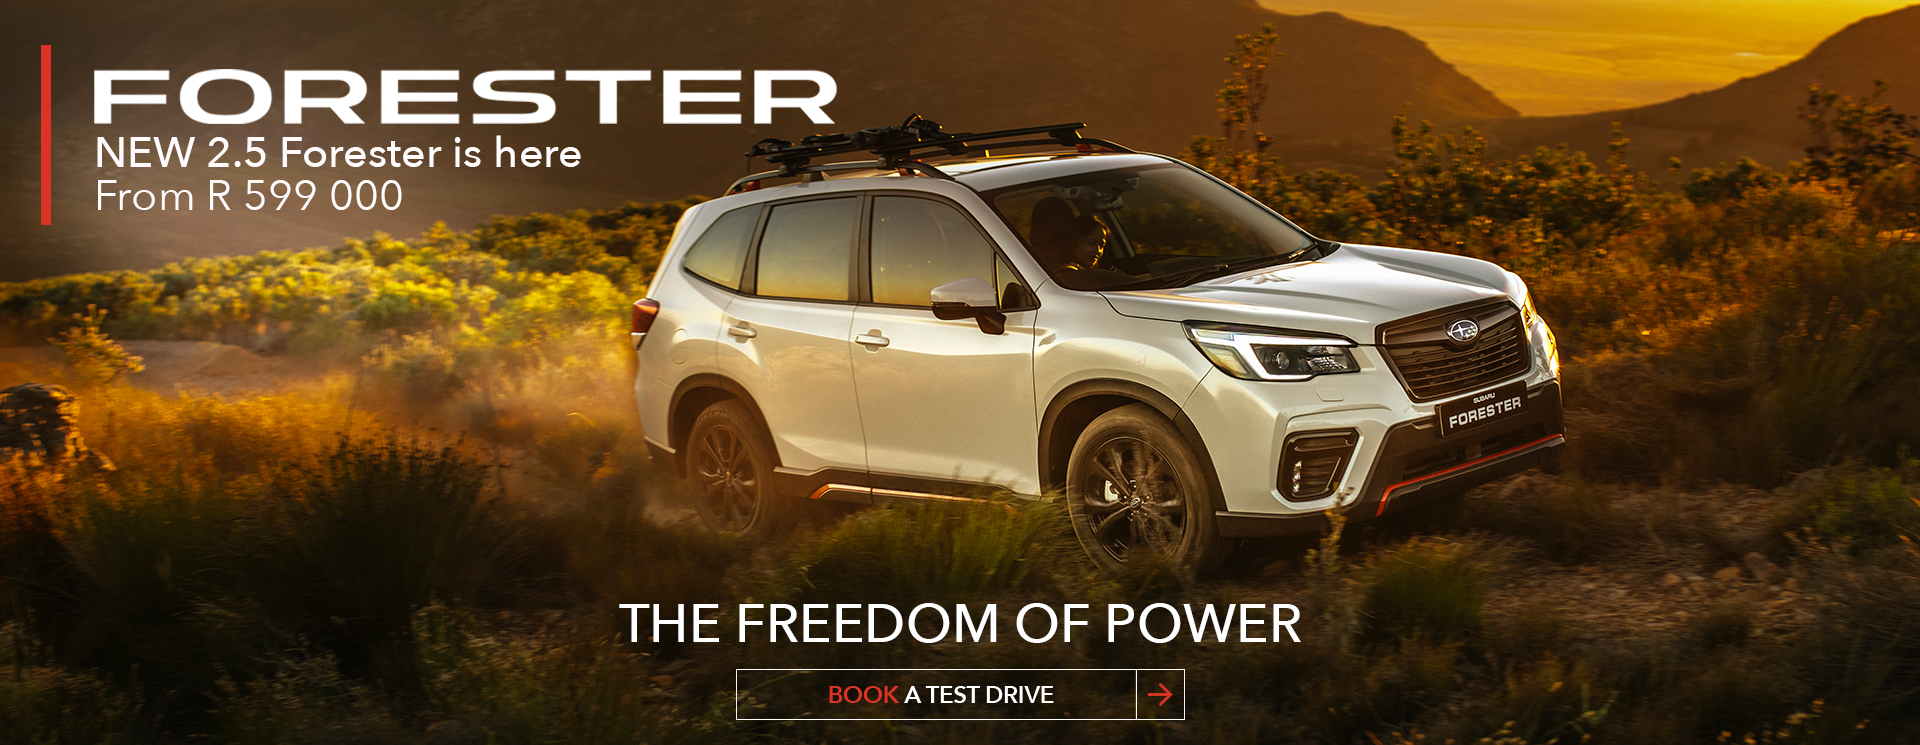 New Forester 2.5 Forester Sport